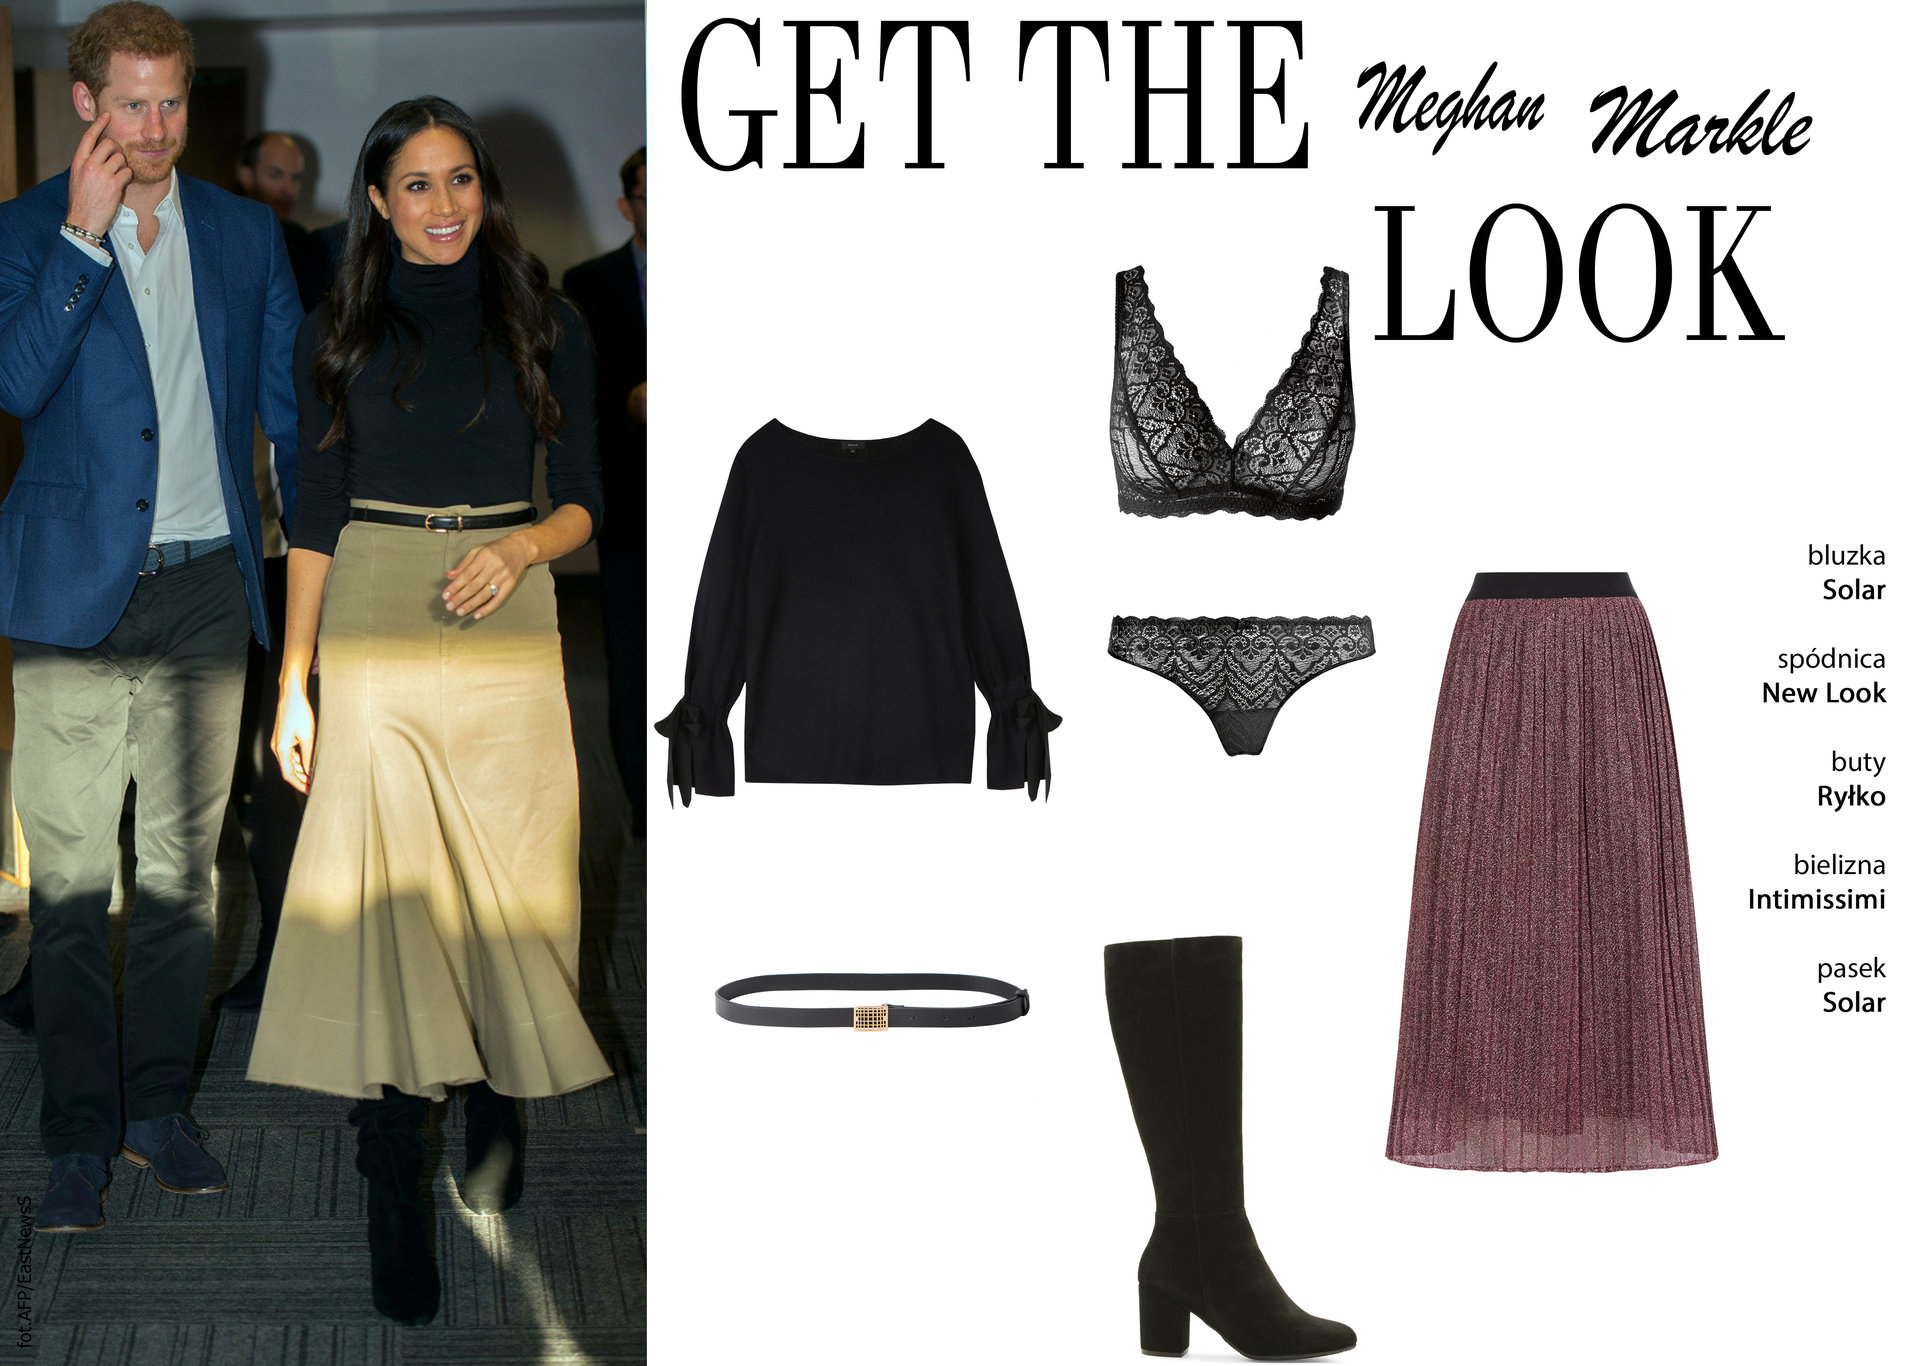 Get the Look- Meghan Markle